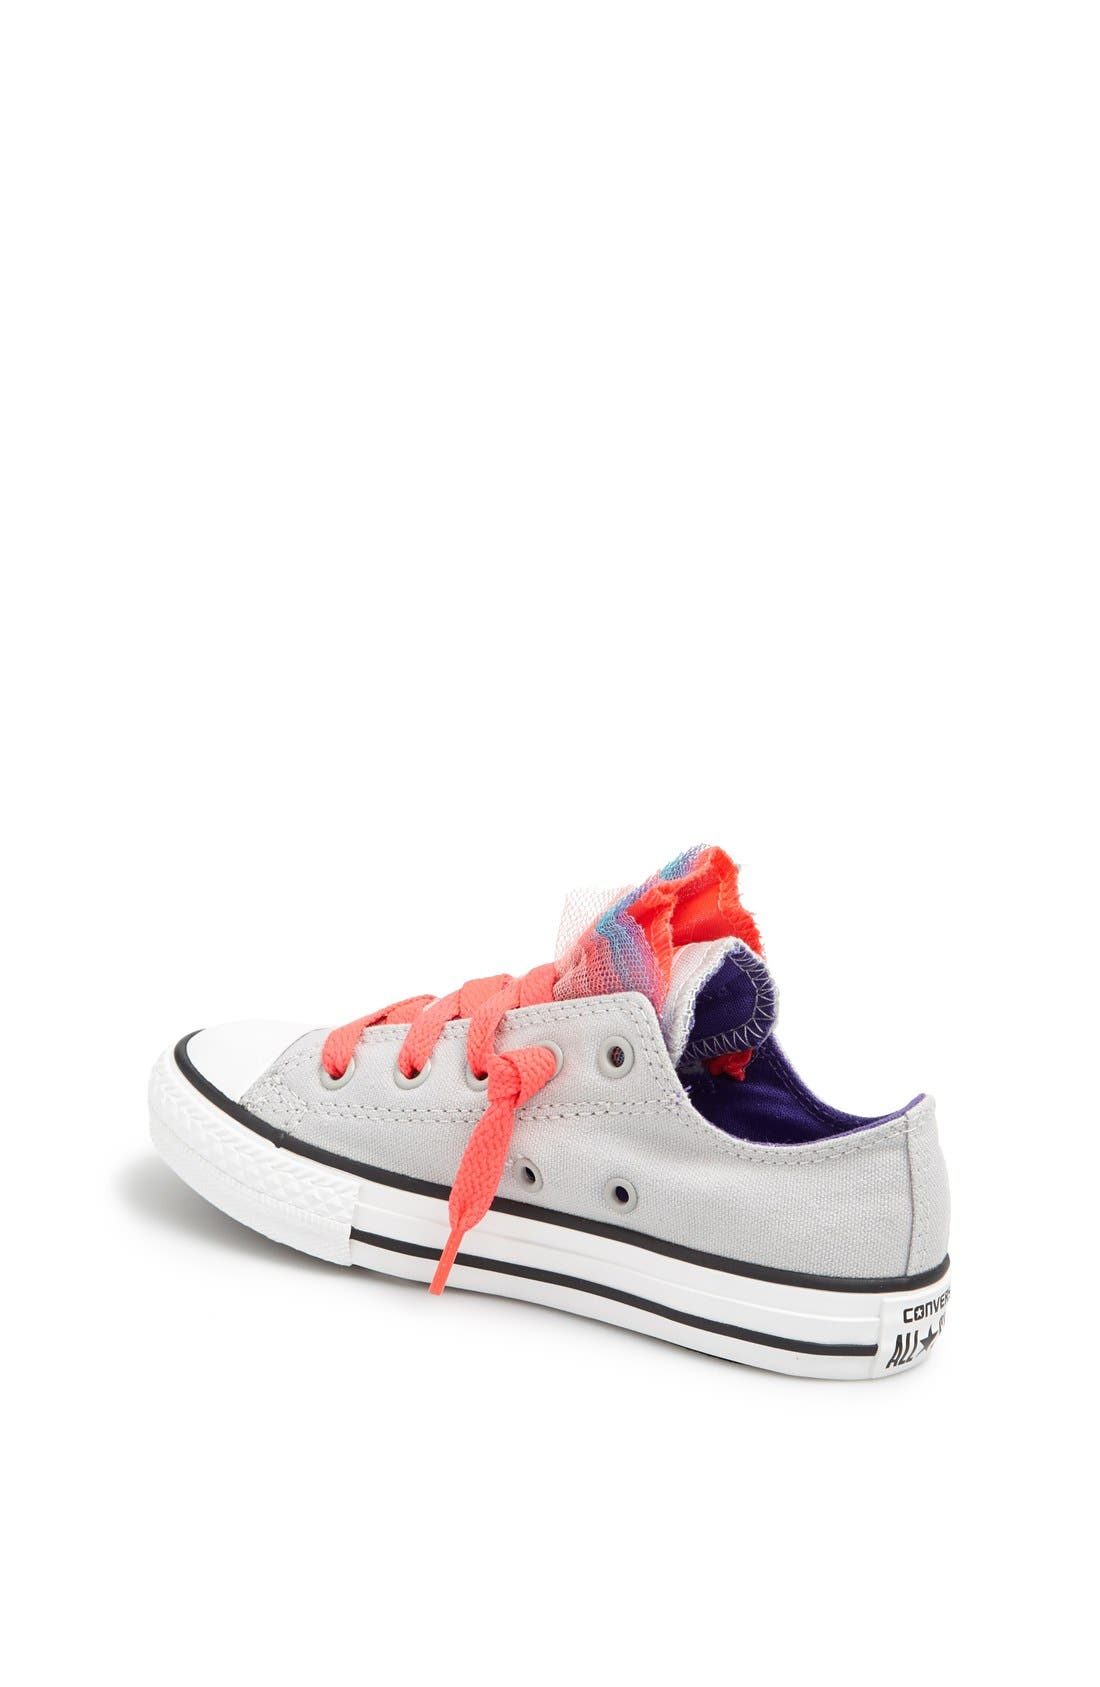 Alternate Image 2  - Converse Chuck Taylor® All Star® 'Party' Sneaker (Toddler, Little Kid & Big Kid)